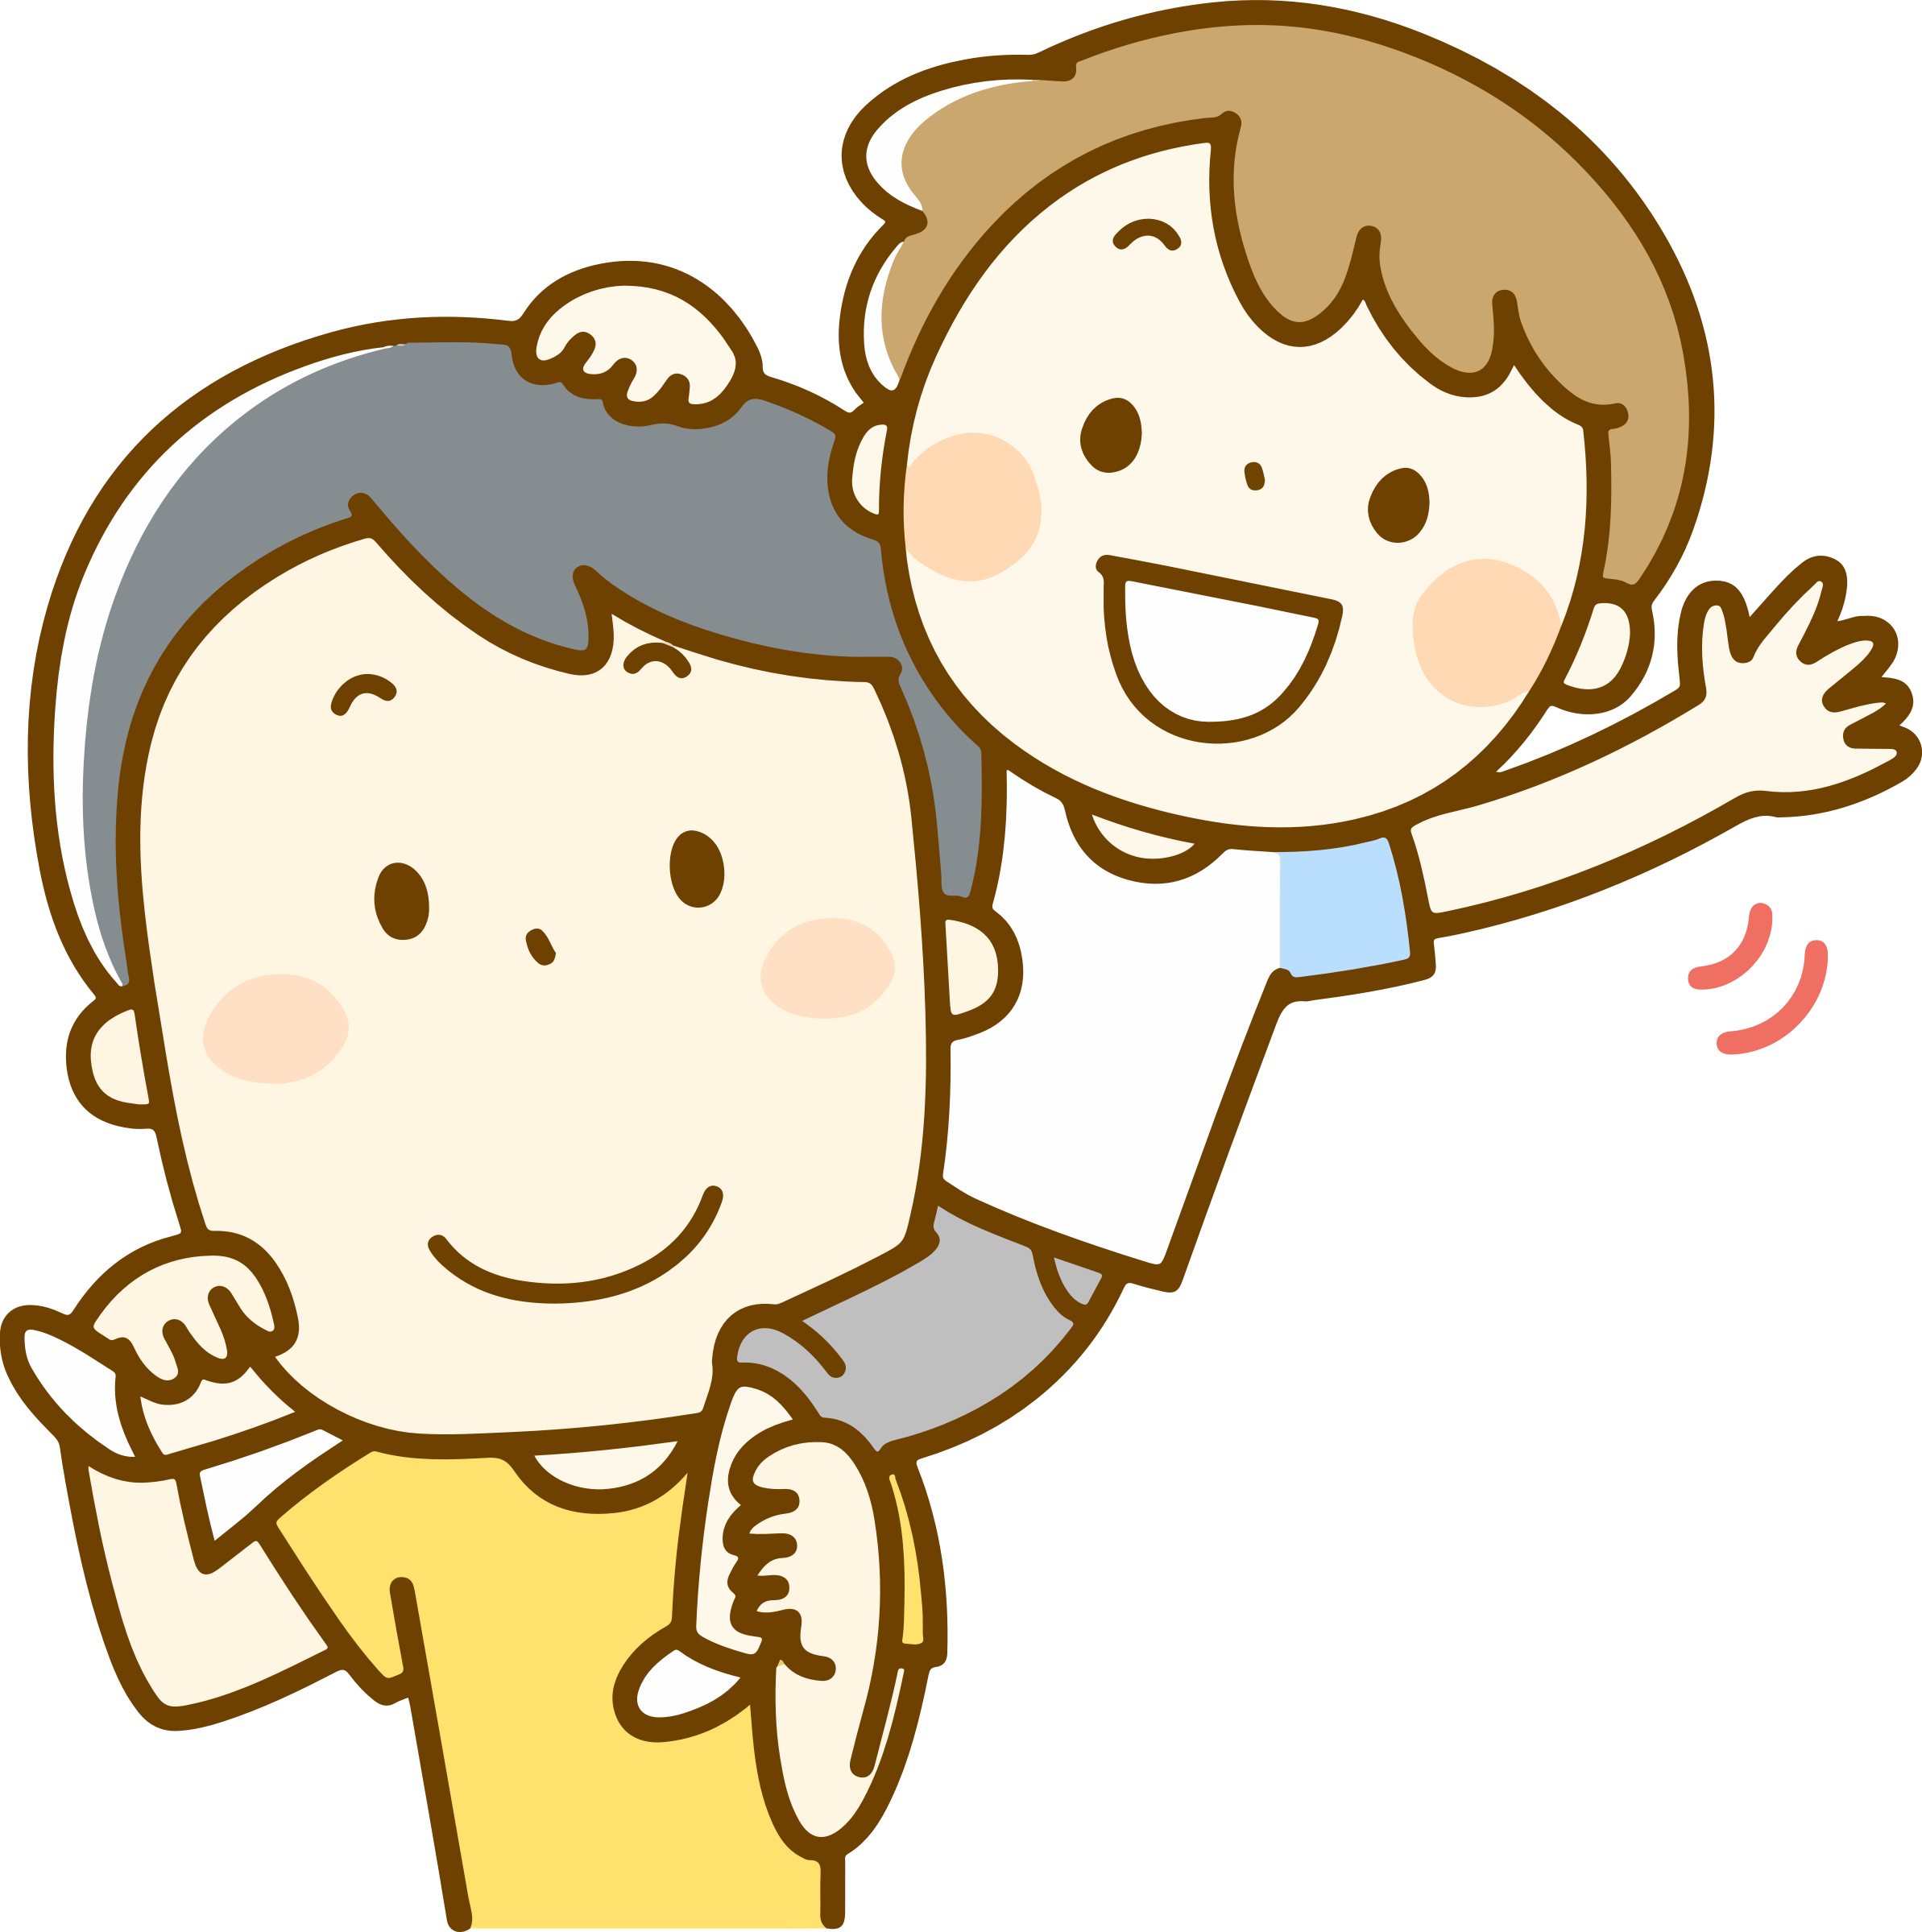 Dad clipart number 1. Fun with big image